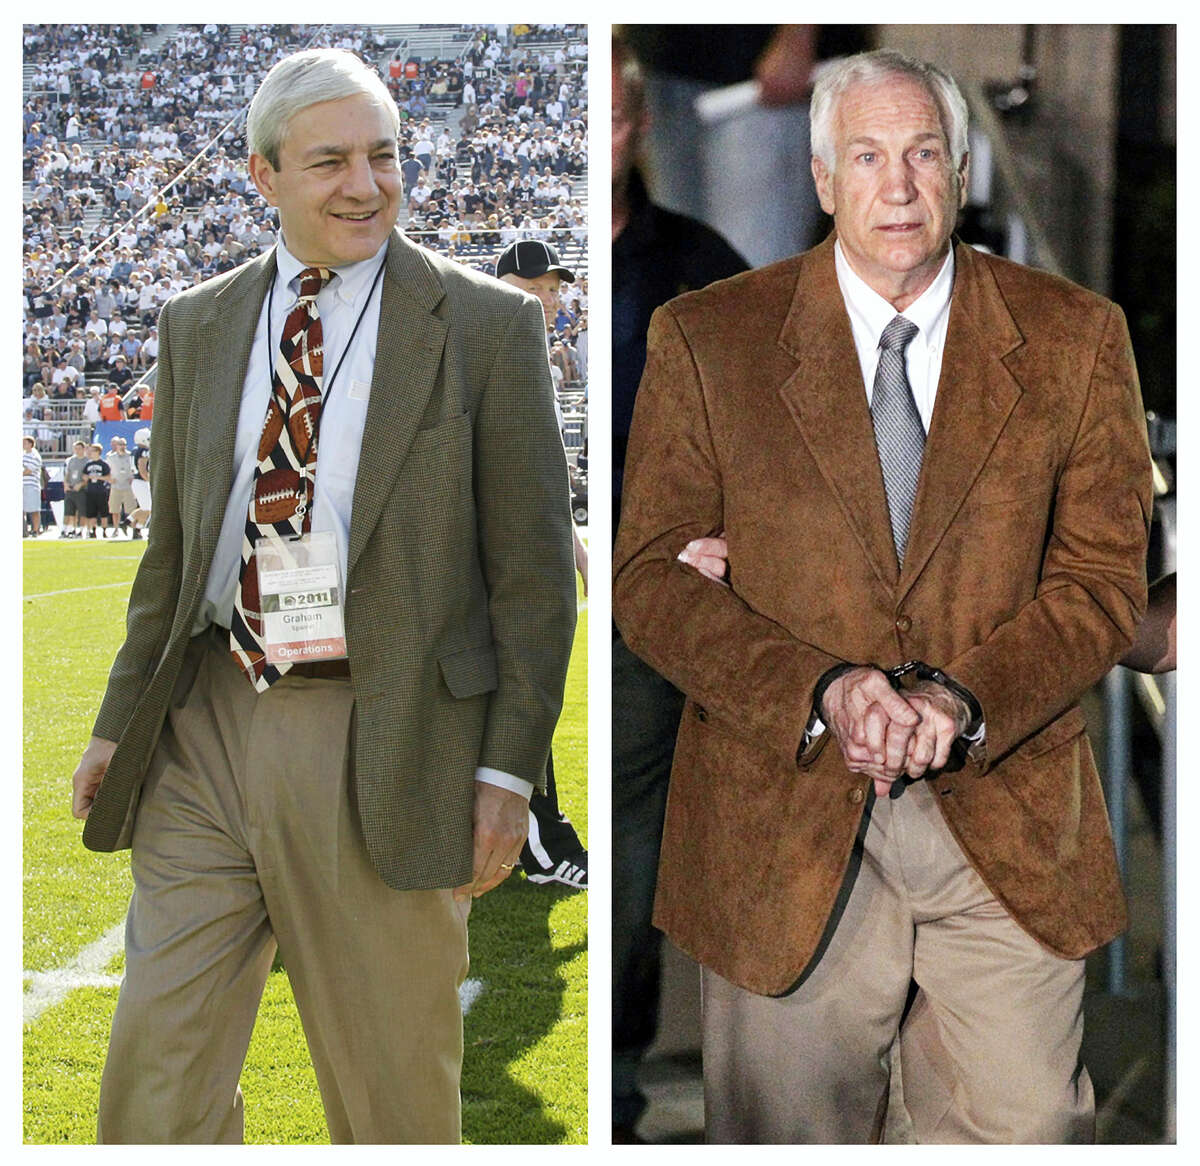 In this combination of file photos, Penn State President Graham Spanier, left, walks on the field before an NCAA college football game Oct. 8, 2011 in State College, Pa., and former Penn State assistant football coach Jerry Sandusky leaves in custody after being found guilty of child sexual abuse charges on June 22, 2012 at the Centre County Courthouse in Bellefonte, Pa. Jury selection is scheduled to begin in Harrisburg, Pa., on Monday, March 20, 2017 in Spanier's trial on charges that children were put at risk by how he responded to complaints about Sandusky more than 15 years ago.